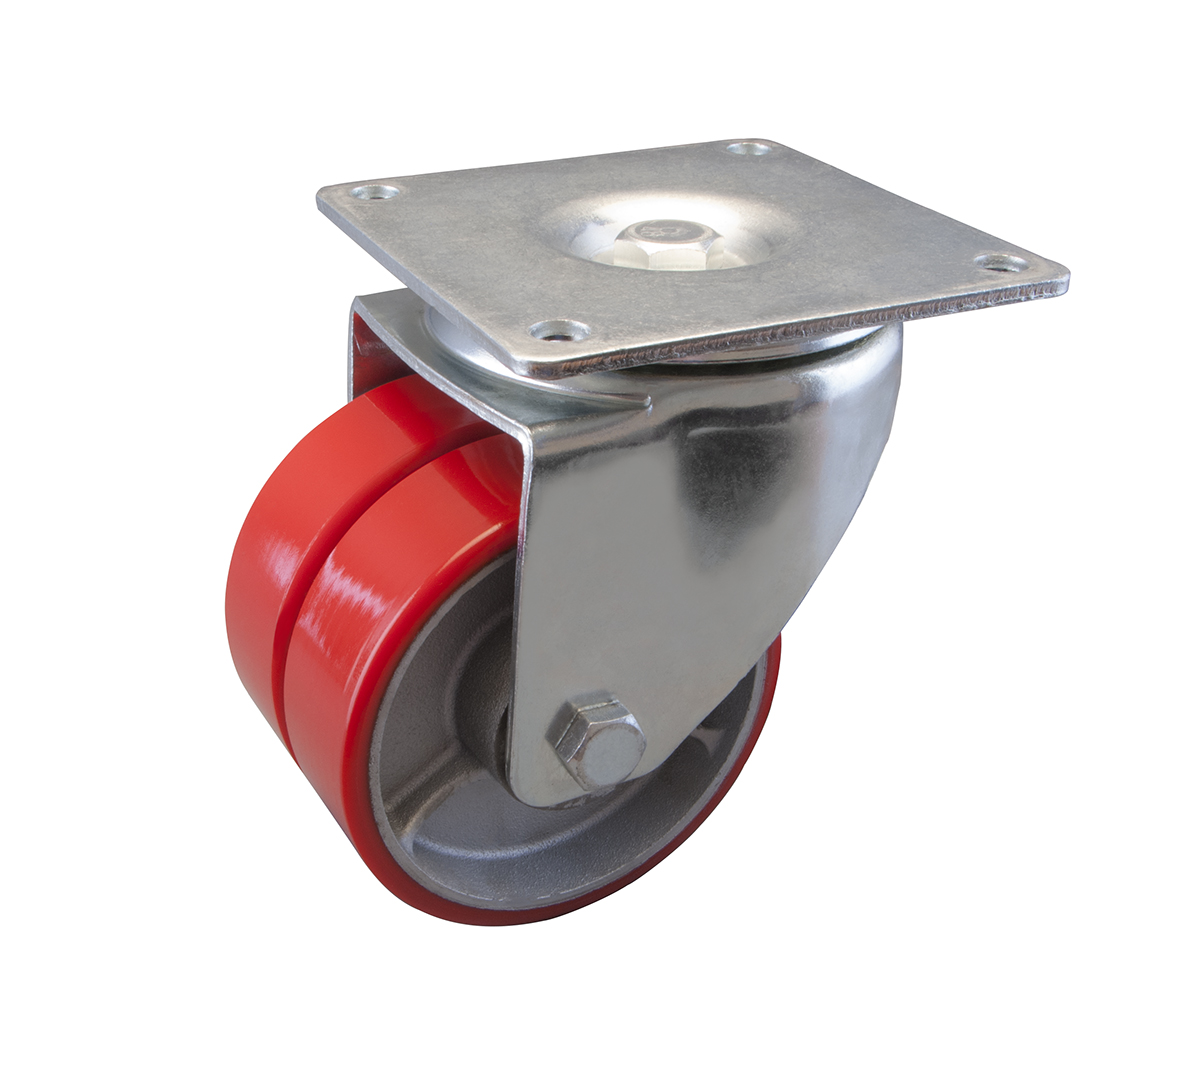 WDS heavy duty castors offer superior performance and mobility